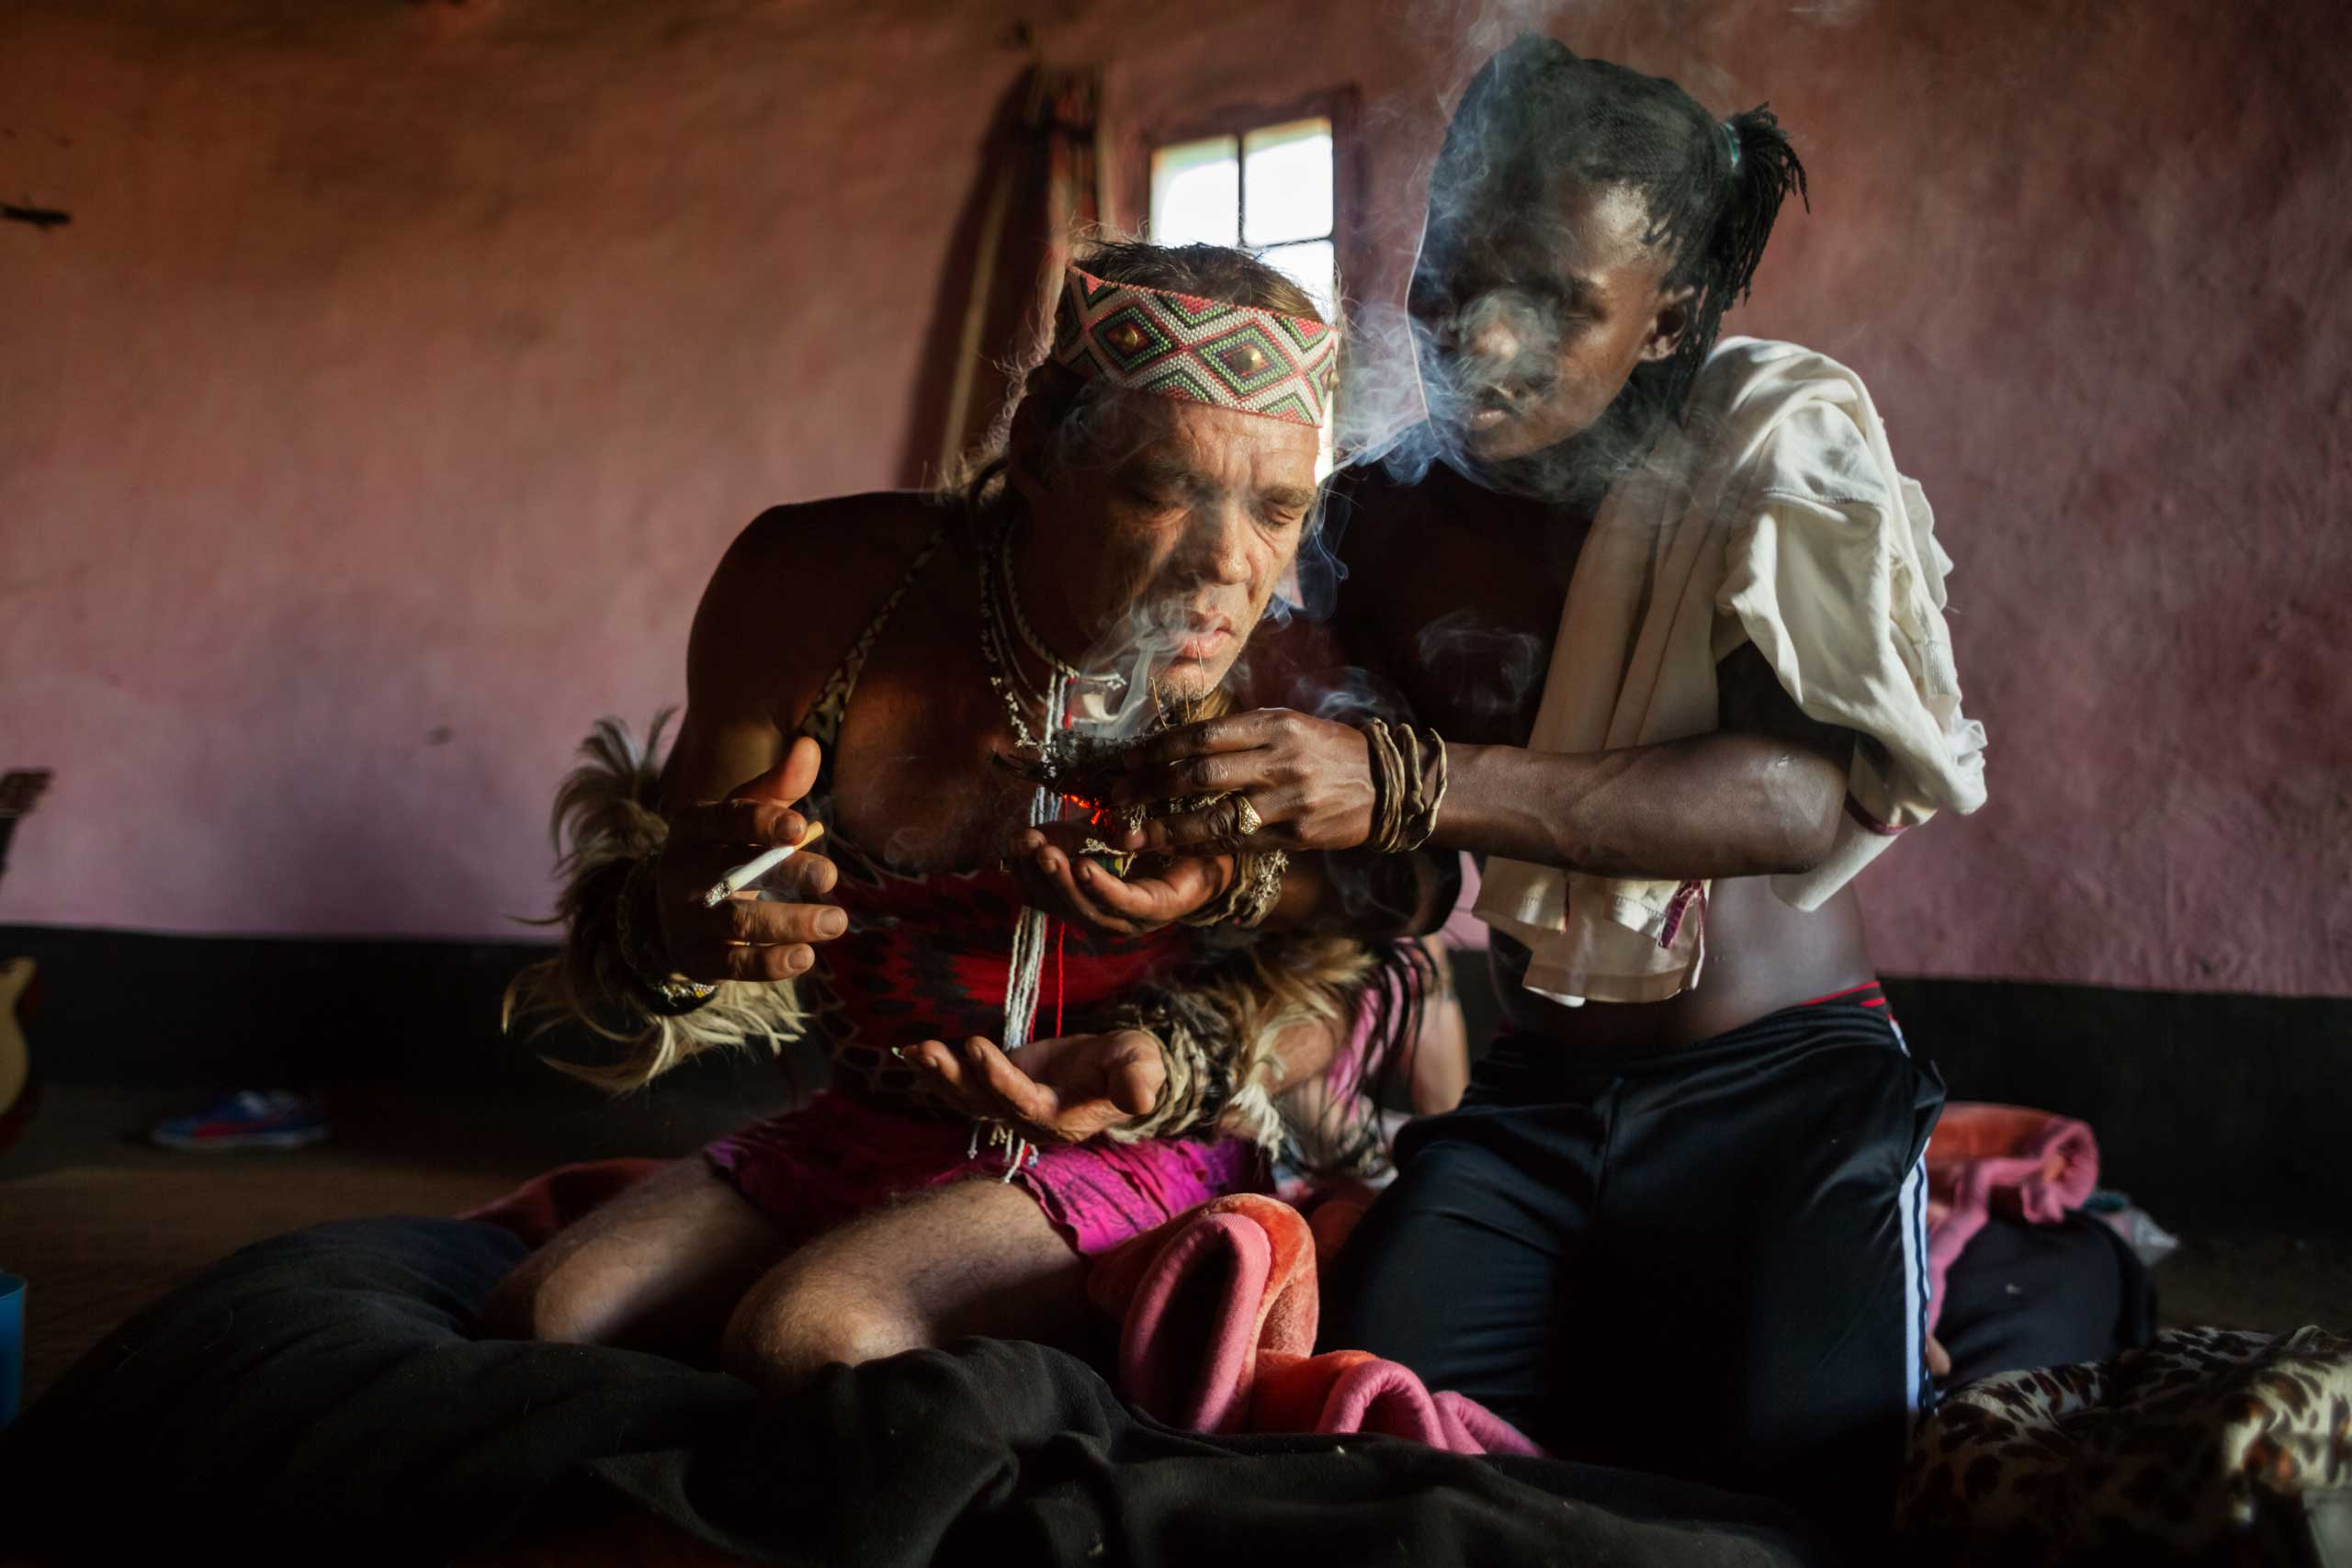 Assisted by sangoma Camagwini, Chris Ntombemhlophe Reid breathes in the smoke of burning mphepho, a herb with spiritually cleansing properties, to emotionally ground himself on Nov. 14, 2014 in Umzizwanga, Lusikisiki District, South Africa.